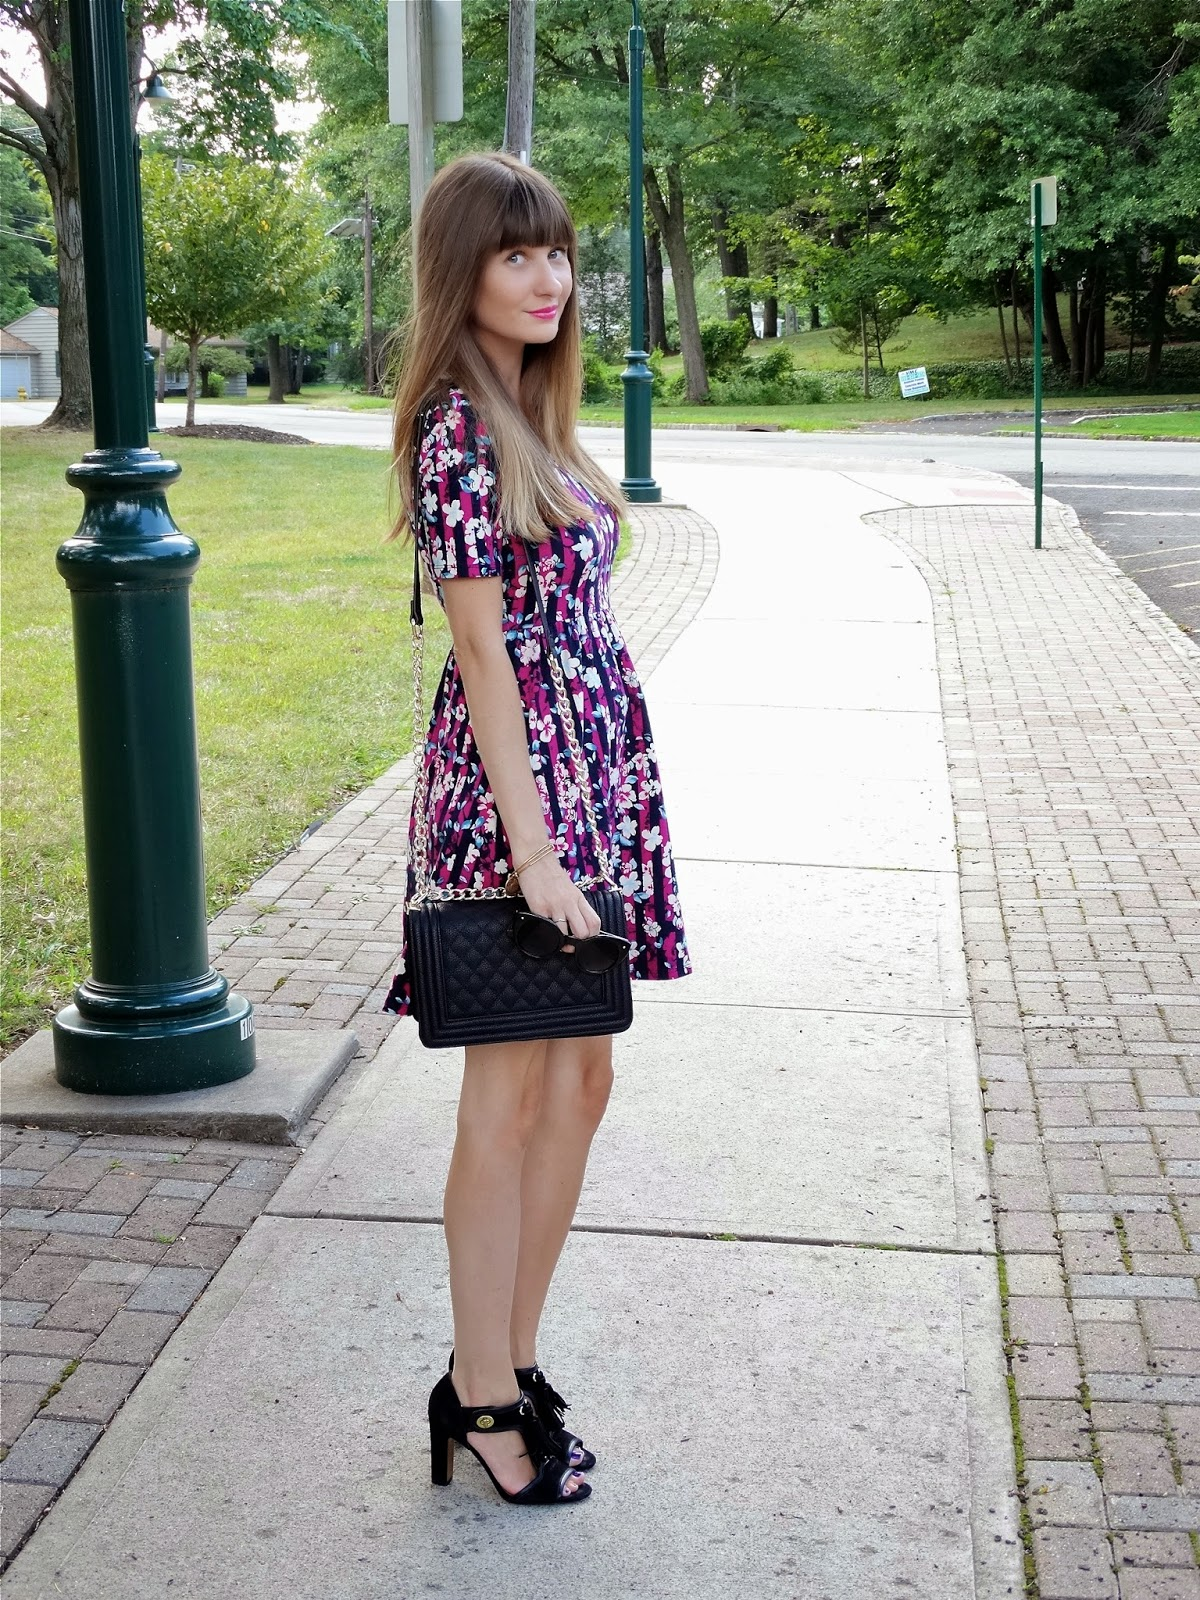 Floral Print Dress, Chanel Inspired Bag, Coach Shoes | House Of Jeffers, a fashion blog from a New Jersey point of view